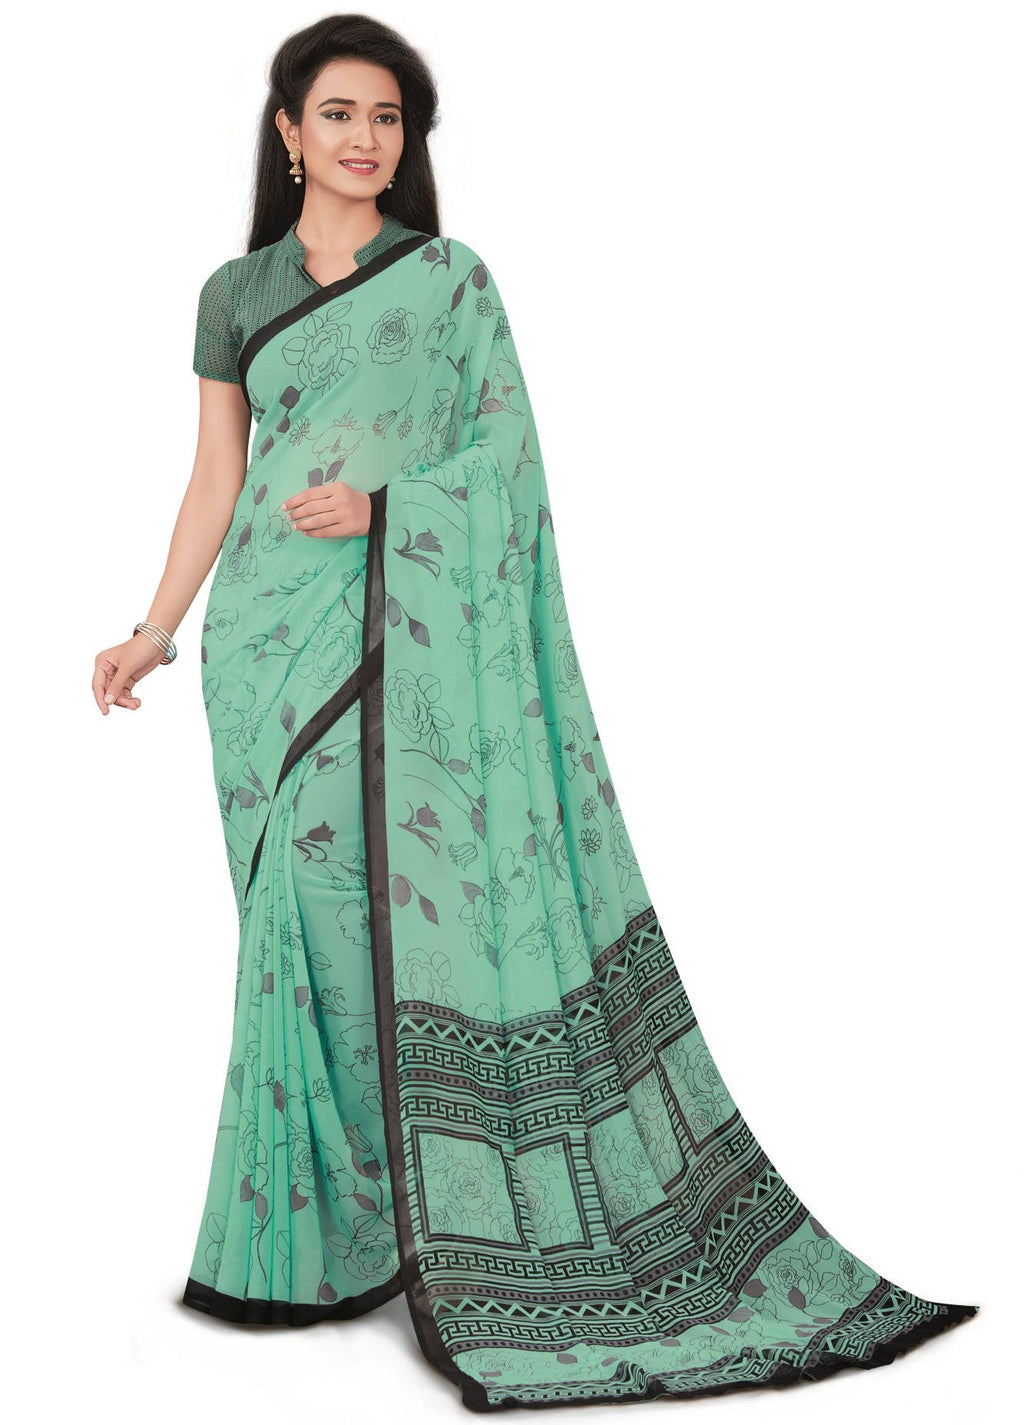 Aqua Green Color Bember Georgette Printed Office Wear Sarees NYF-7649